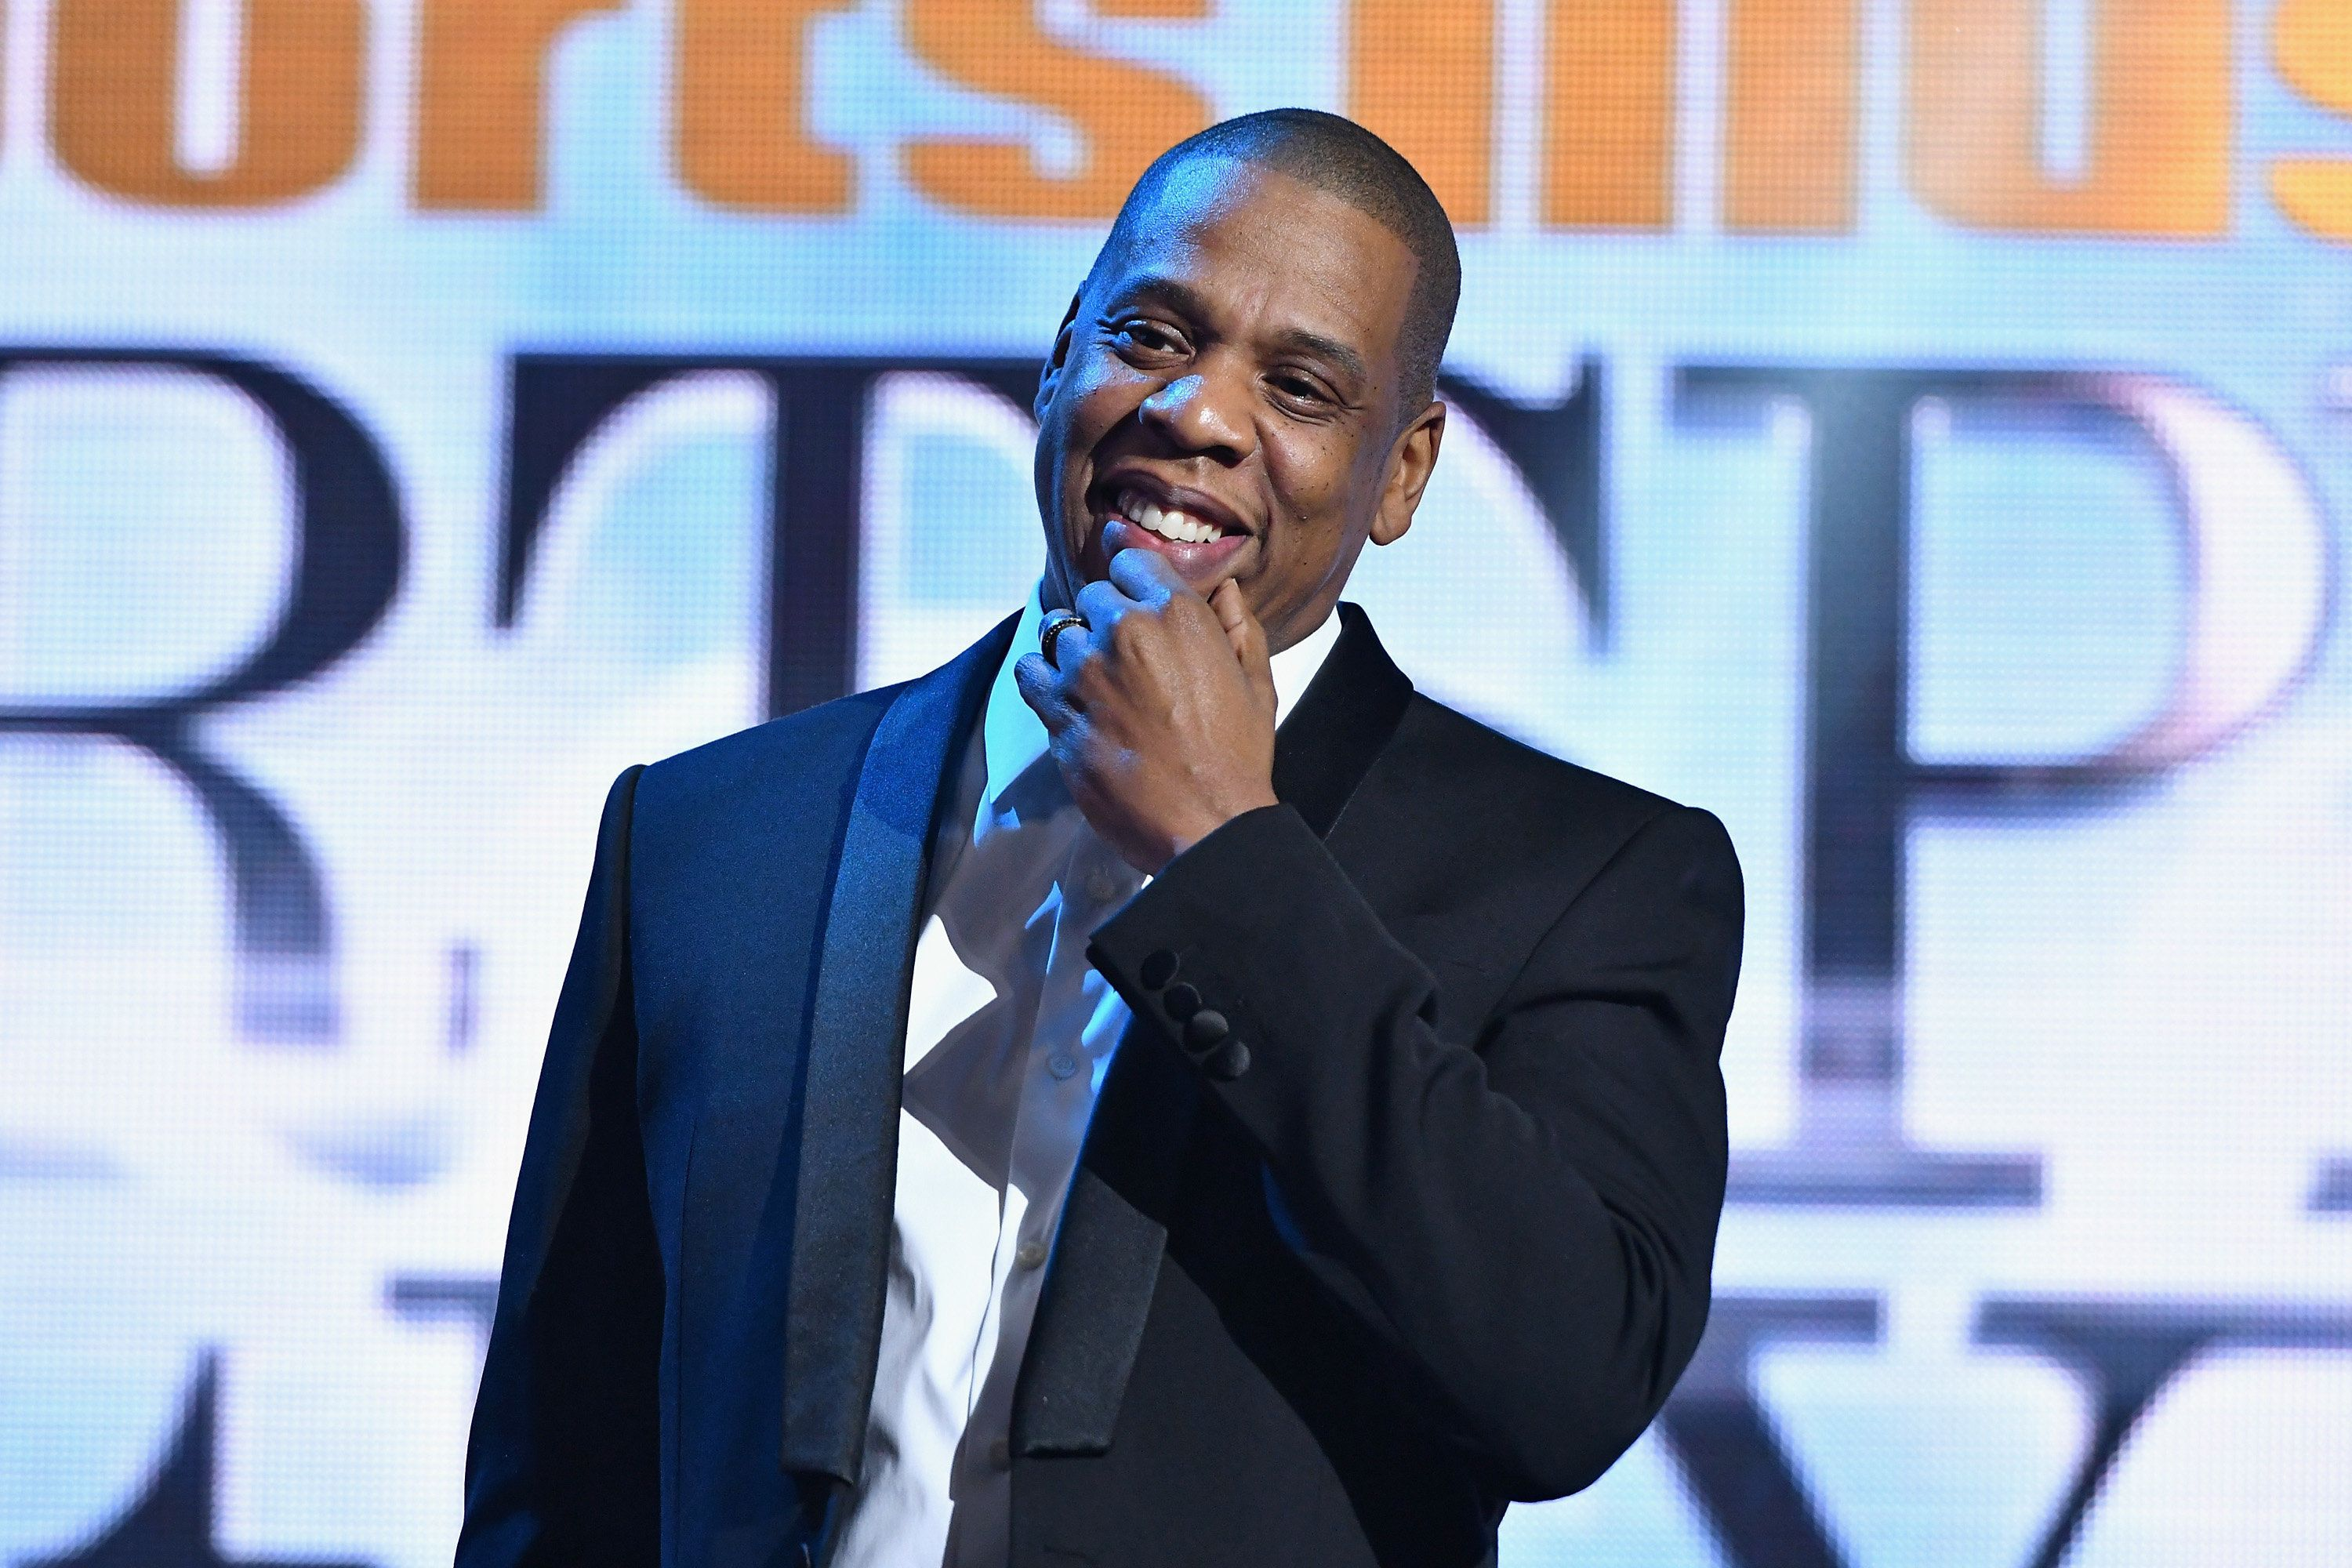 NEW YORK, NY - DECEMBER 12:  Jay Z speaks onstage during the Sports Illustrated Sportsperson of the Year Ceremony 2016 at Barclays Center of Brooklyn on December 12, 2016 in New York City.  (Photo by Slaven Vlasic/Getty Images for Sports Illustrated)